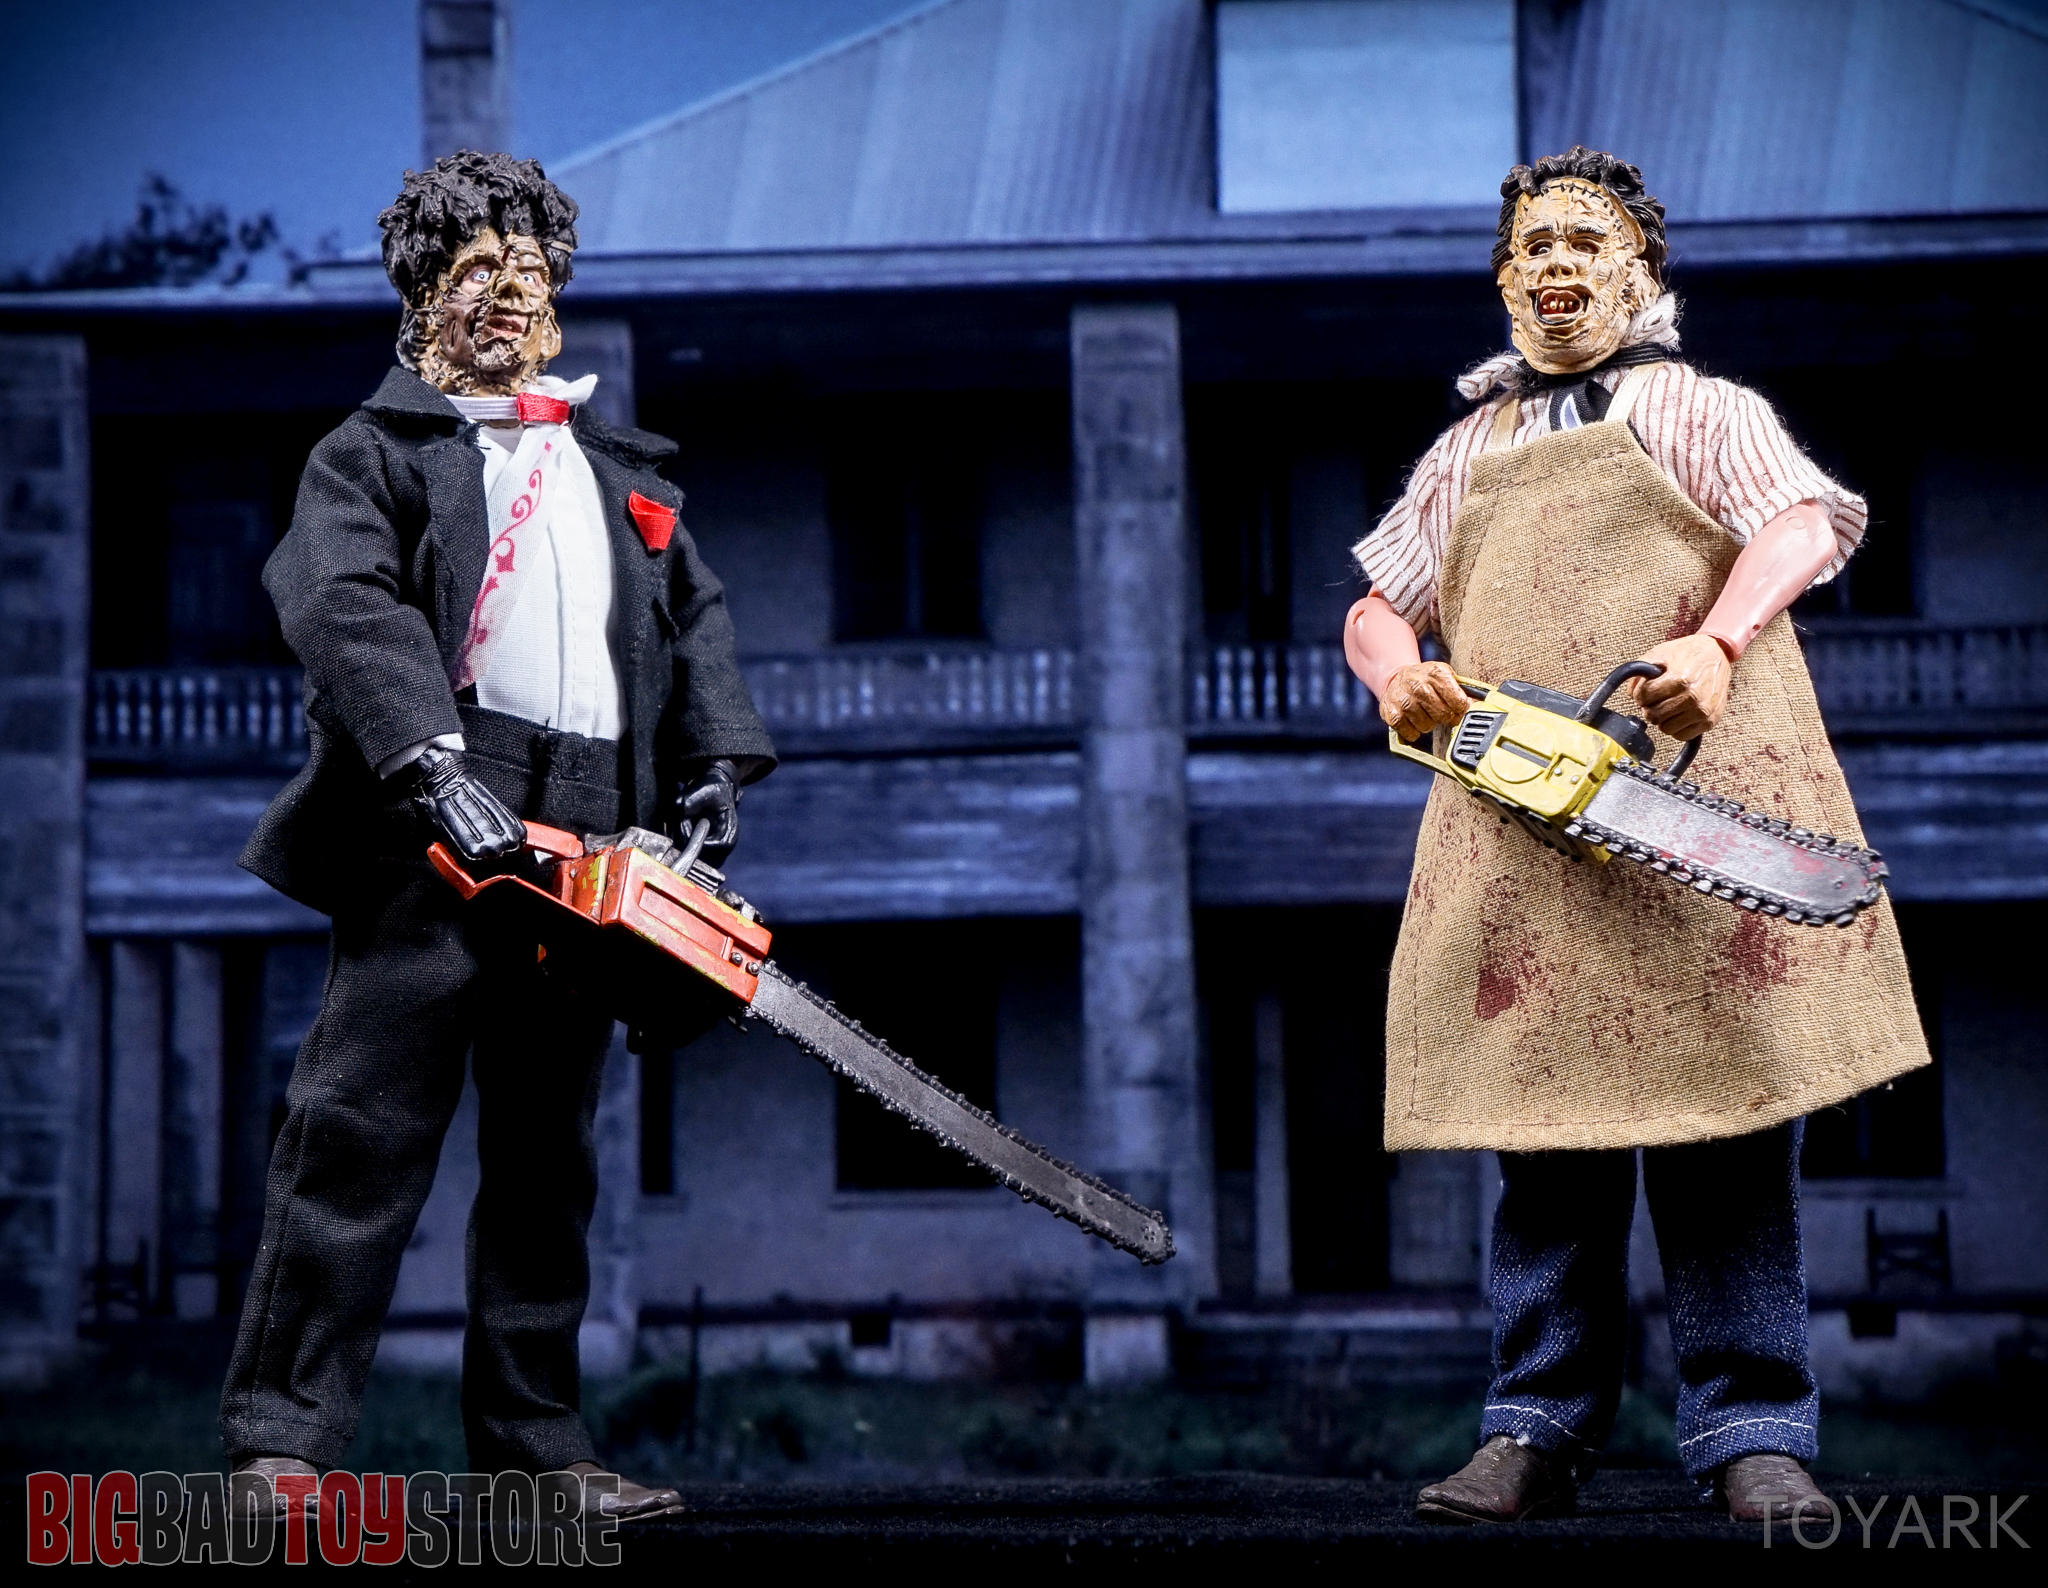 http://news.toyark.com/wp-content/uploads/sites/4/2016/07/NECA-TCM2-Leatherface-043.jpg